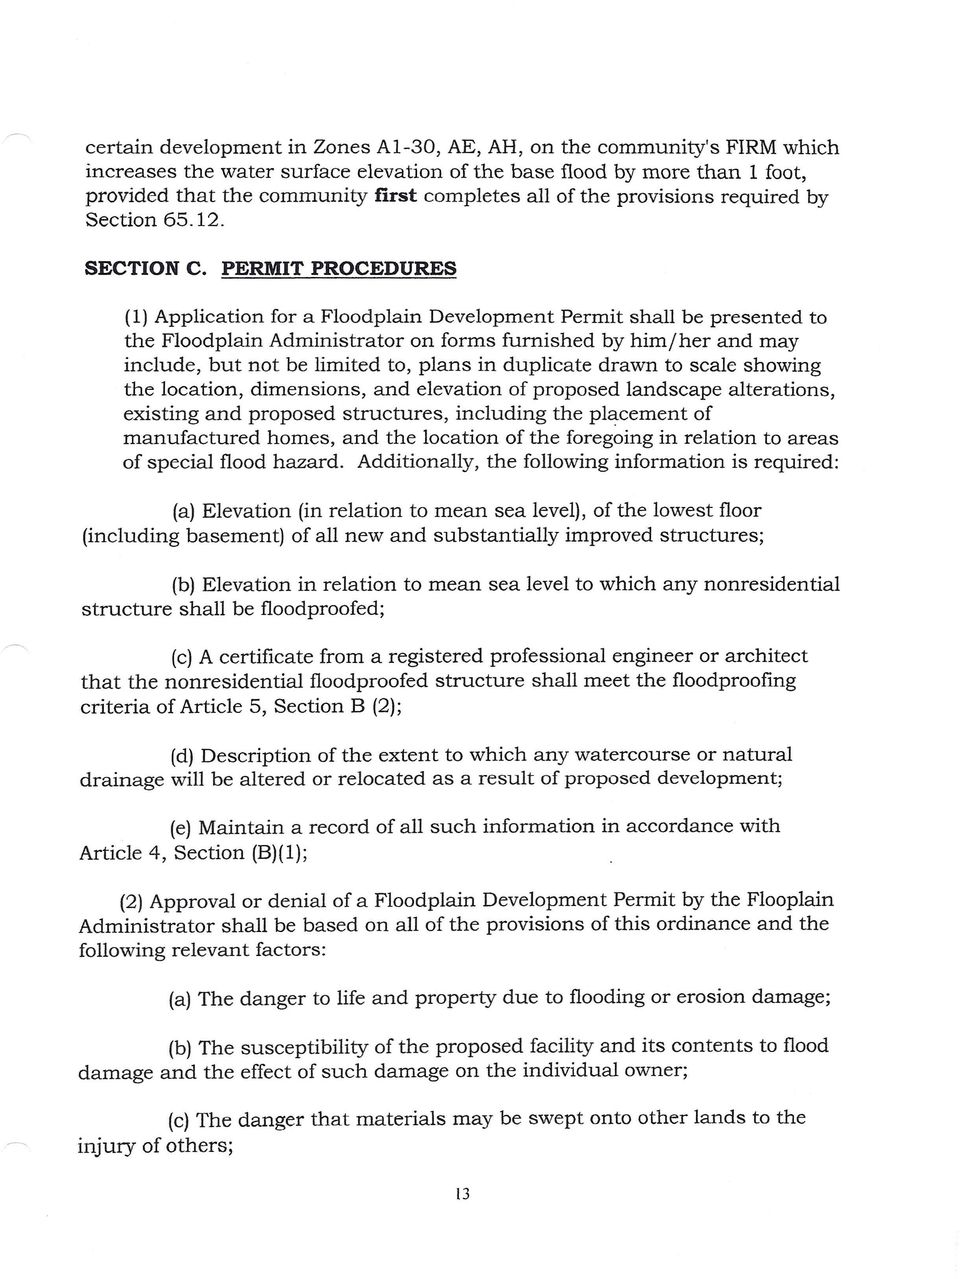 PERMIT PROCEDURES (1) Application for a Floodplain Development Permit shall be presented to the Floodplain Administrator on forms furnished by him/her and may include, but not be limited to, plans in